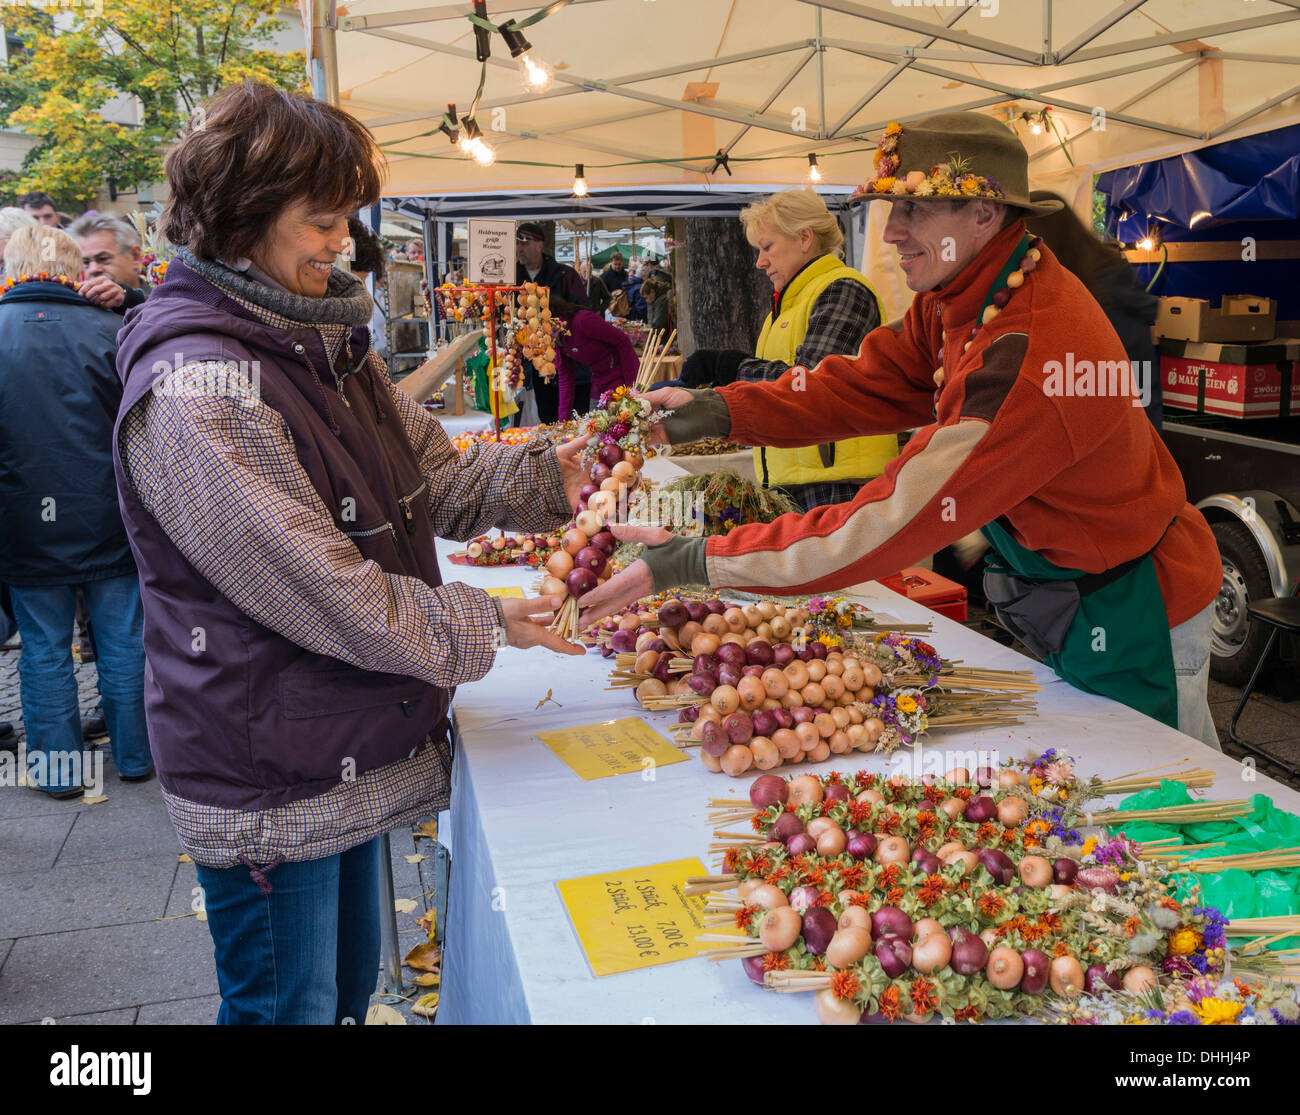 Onion market, sales situation, Weimar, Thuringia, Germany - Stock Image